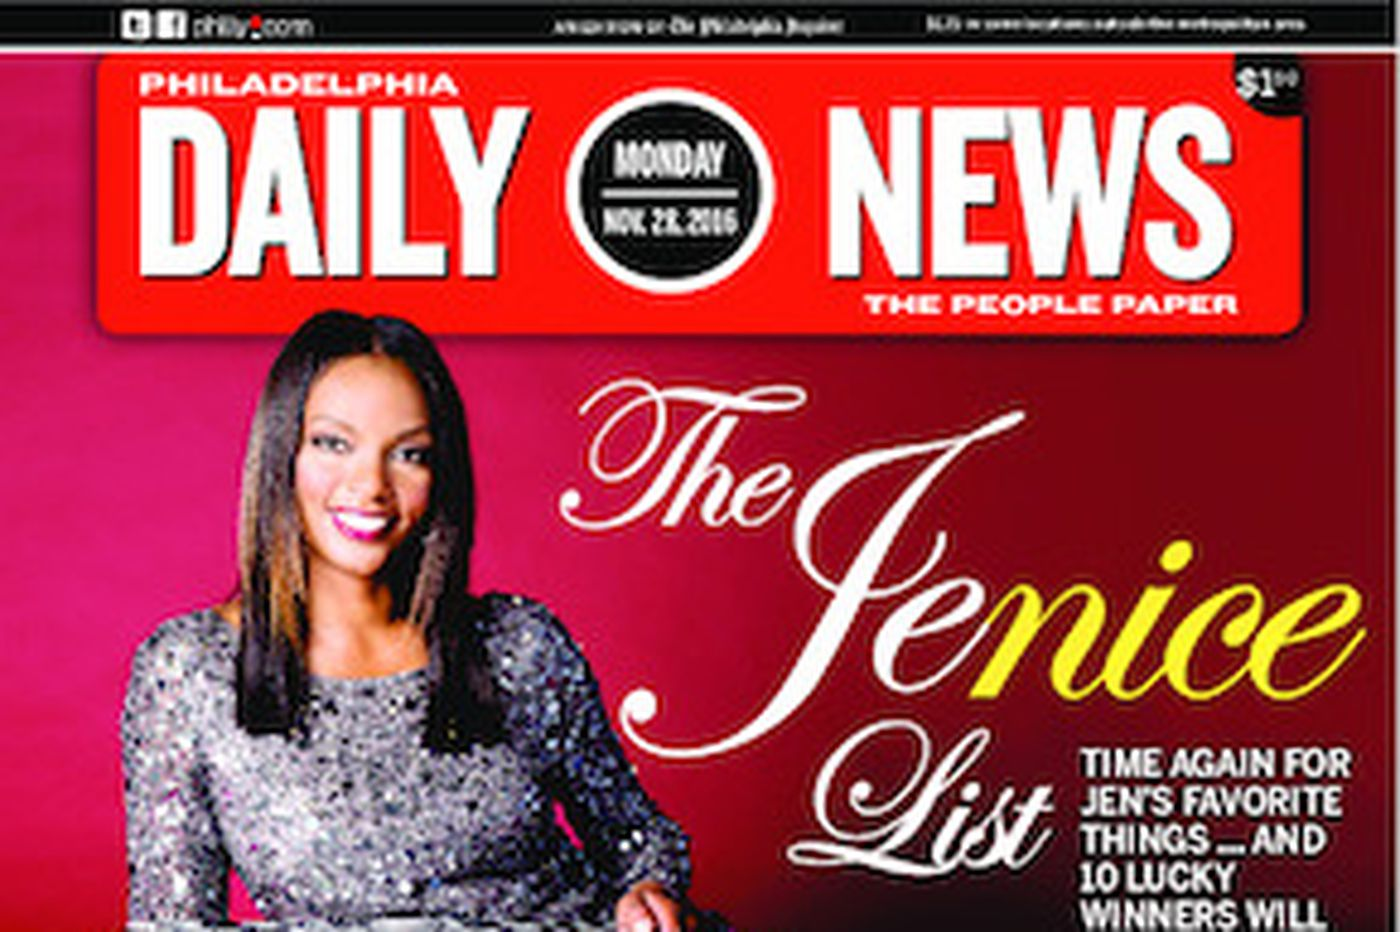 Dailynews Monthly Covers 11/28/16